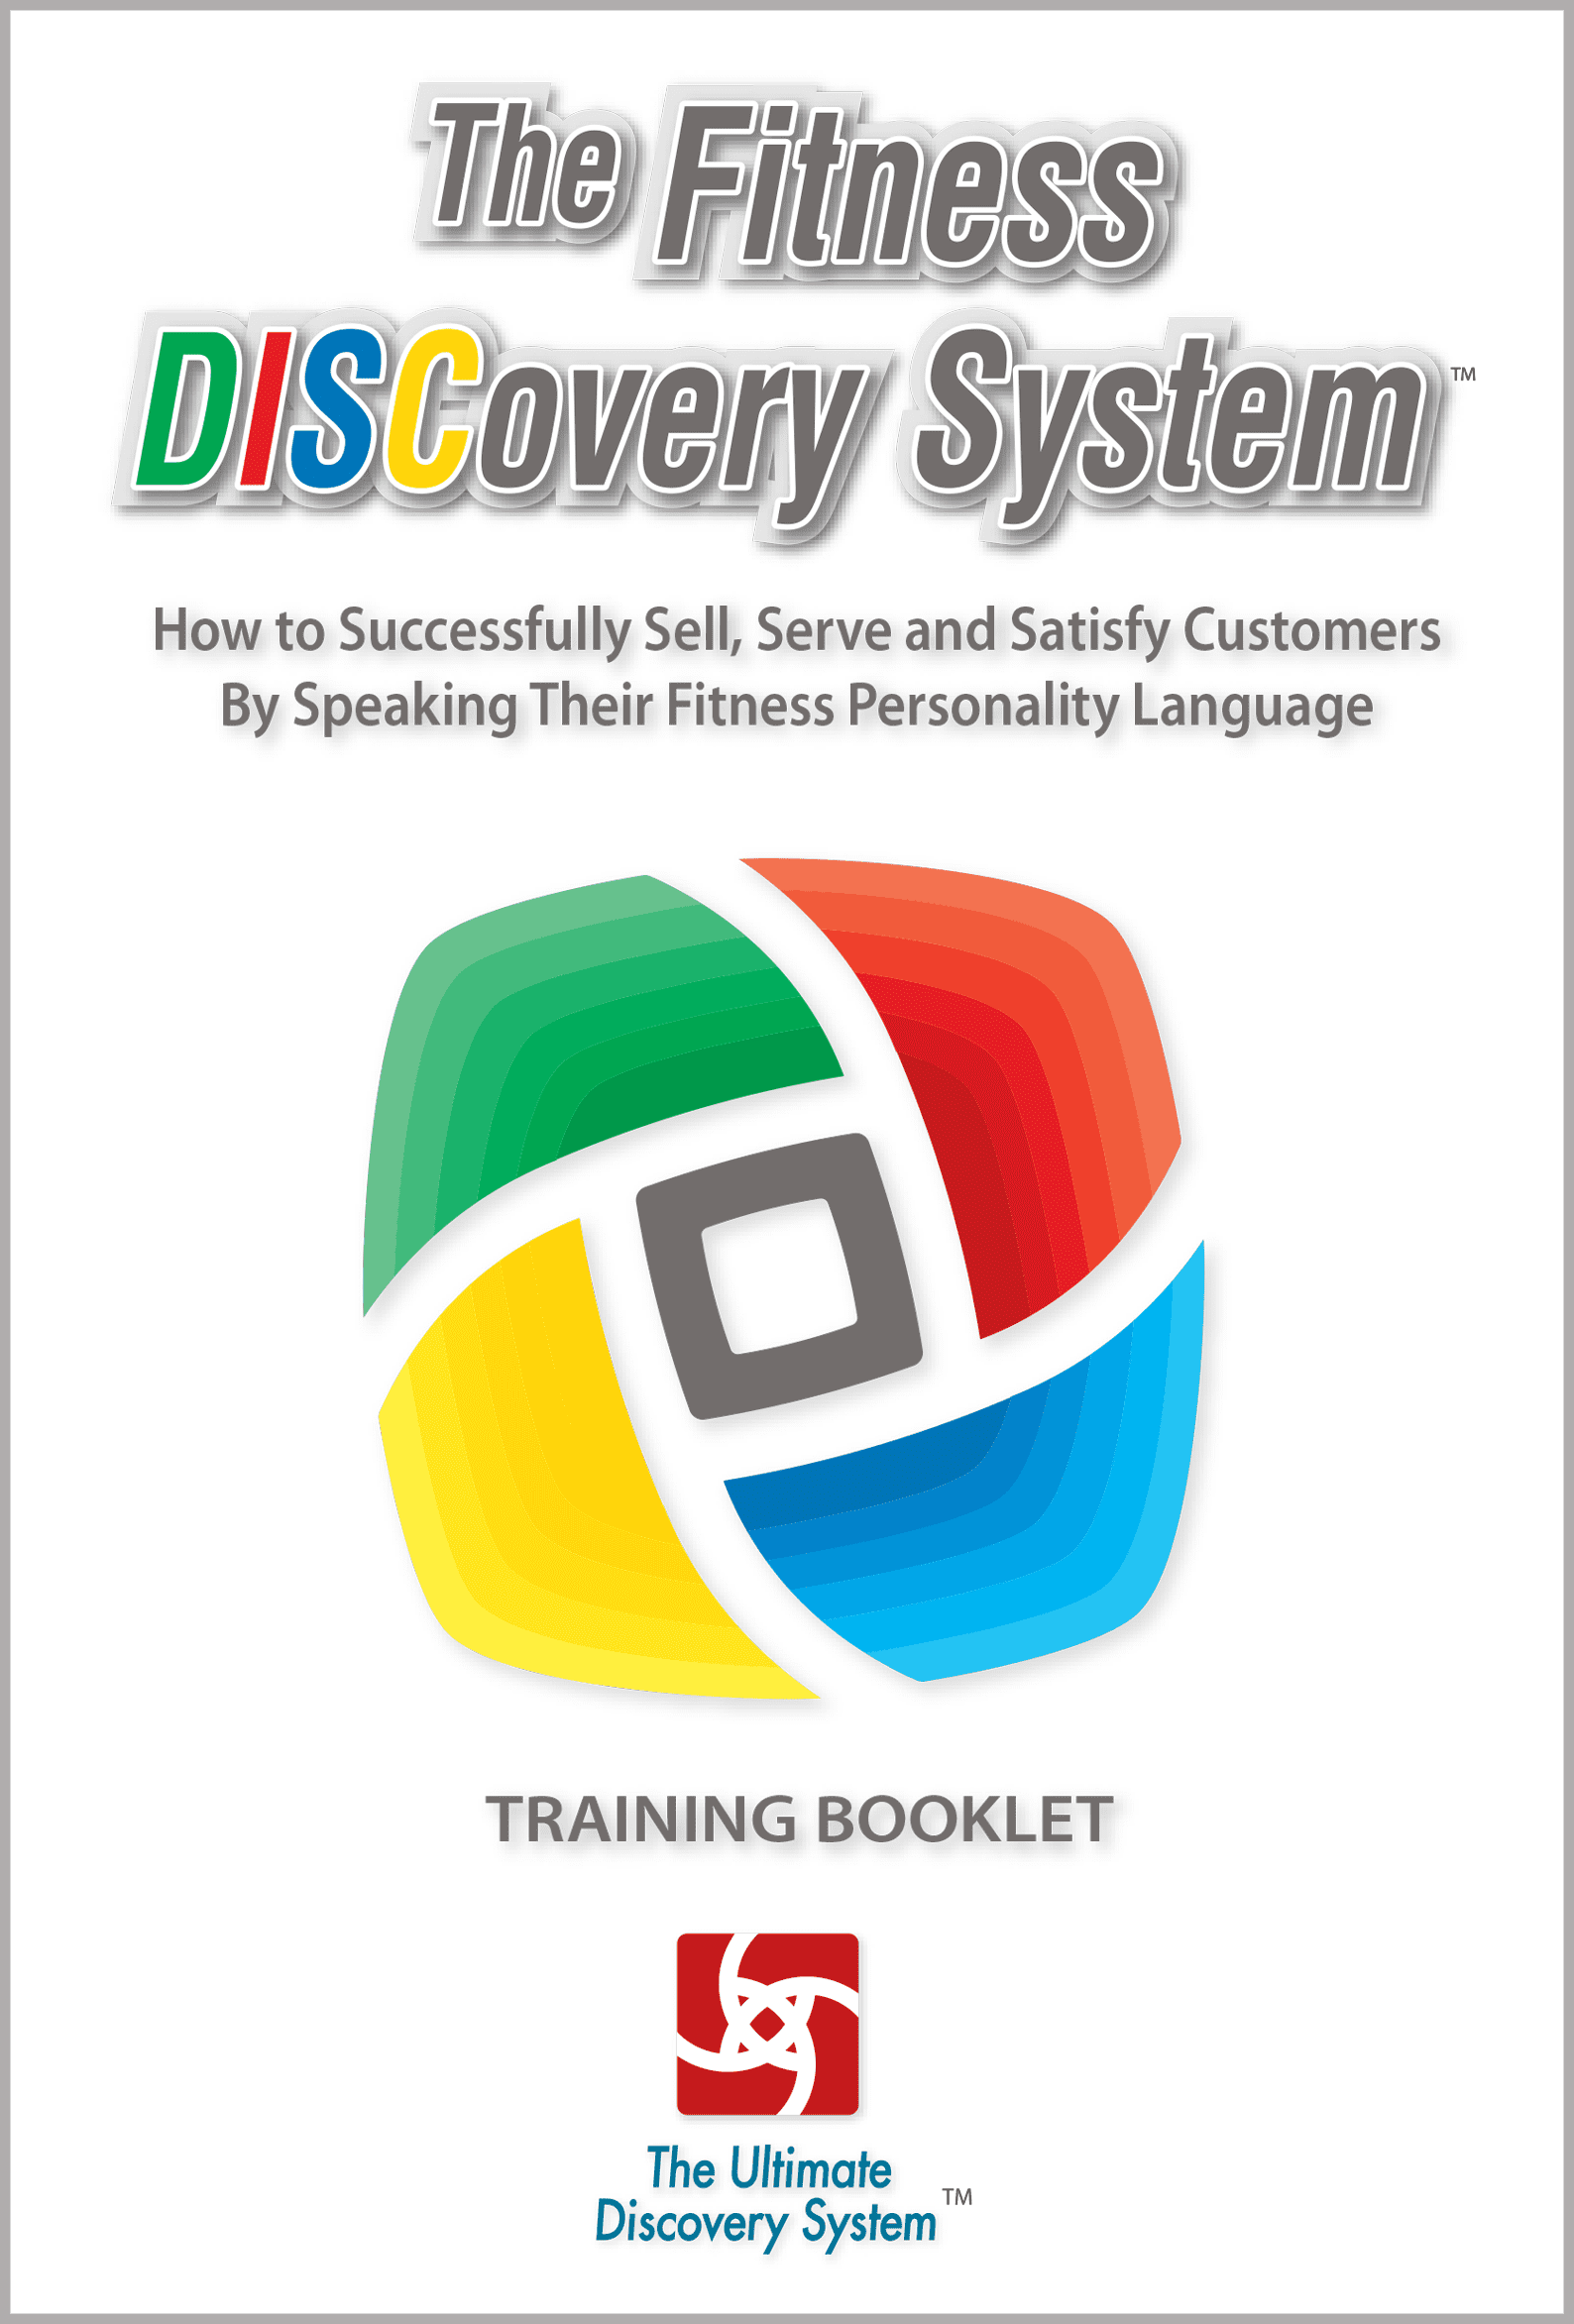 The Fitness DISCovery System Training Booklet